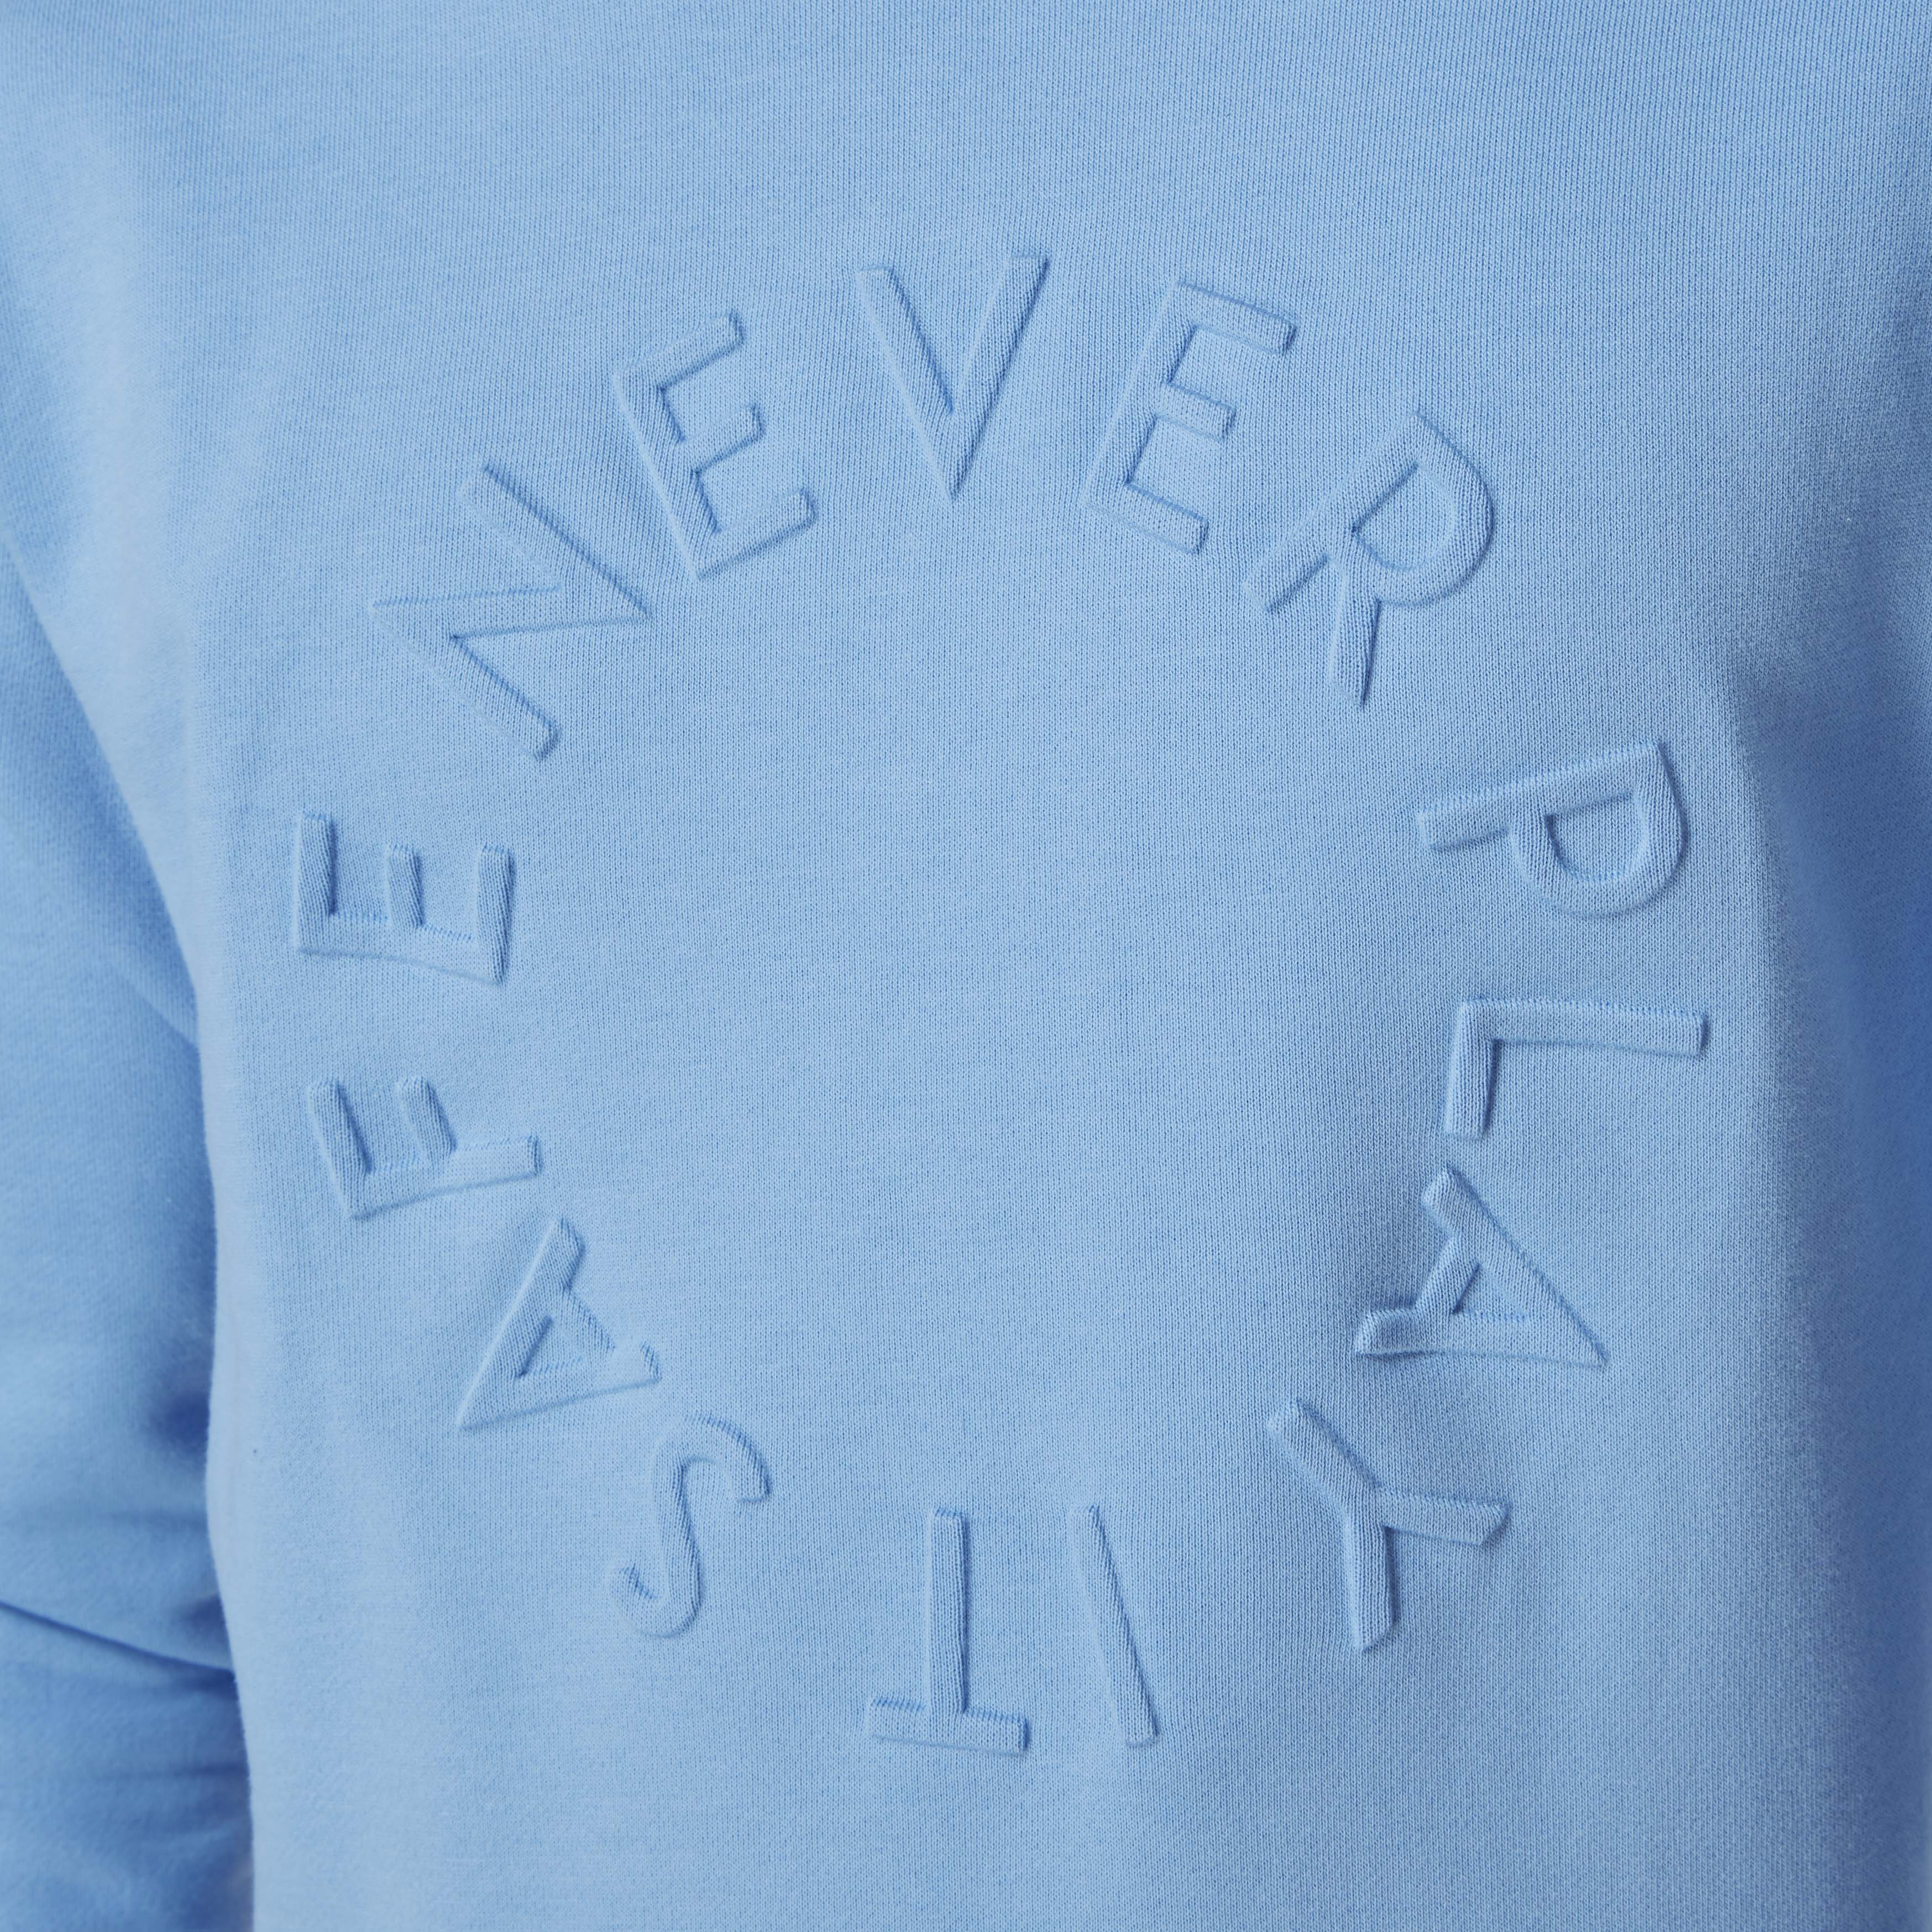 Ted | Sweater round-neck light blue